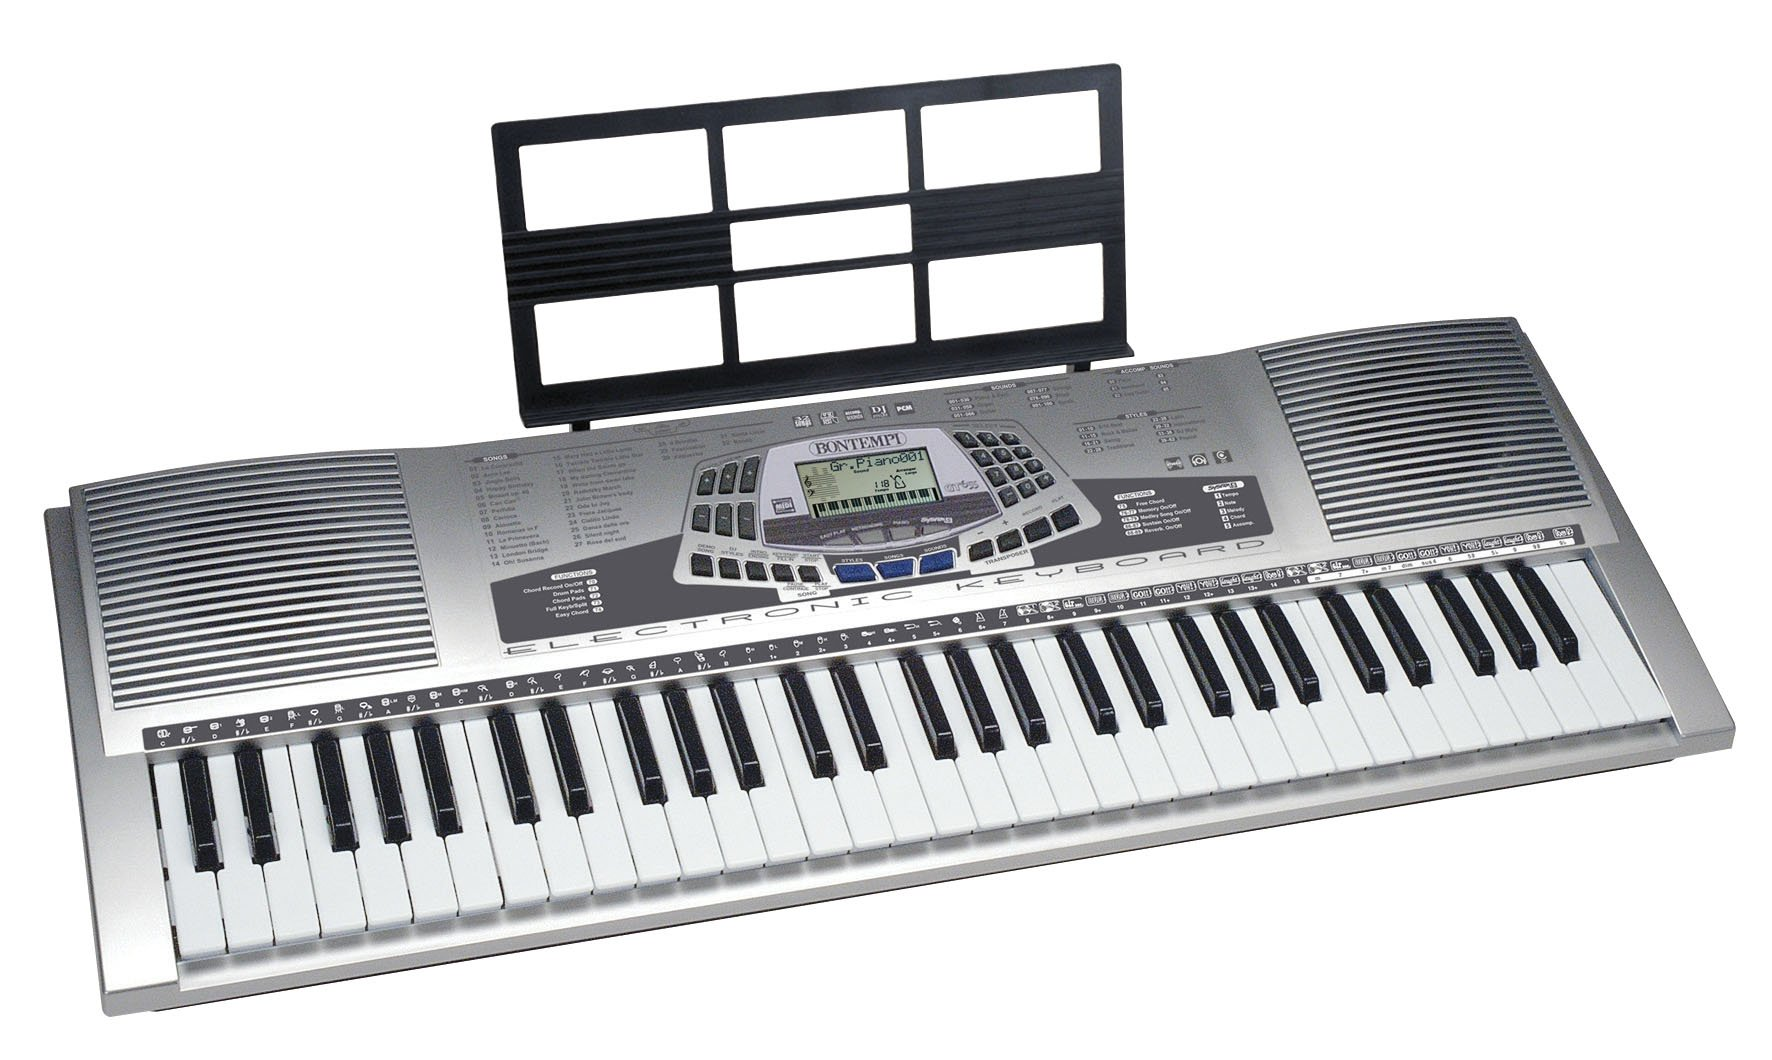 Bontempi PM678 - Tastiera 61 Tasti General Midi Con Display Lcd 100